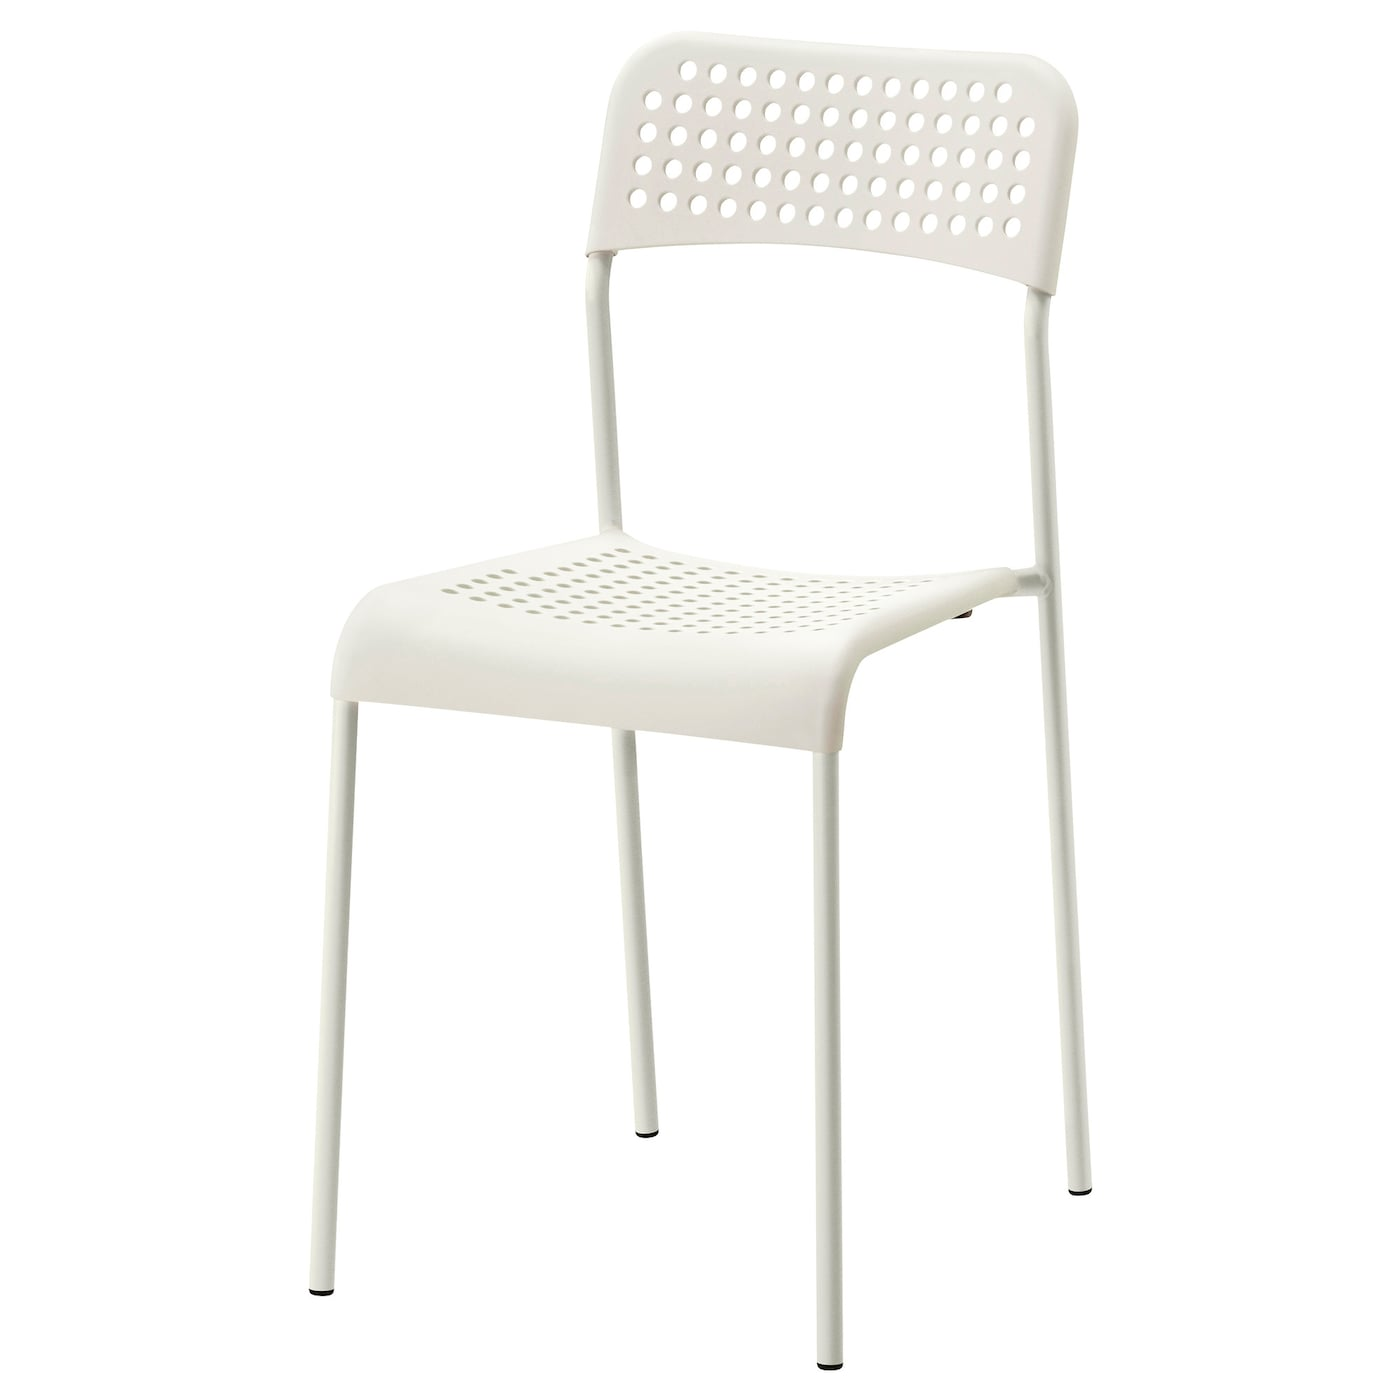 adde chair white - ikea